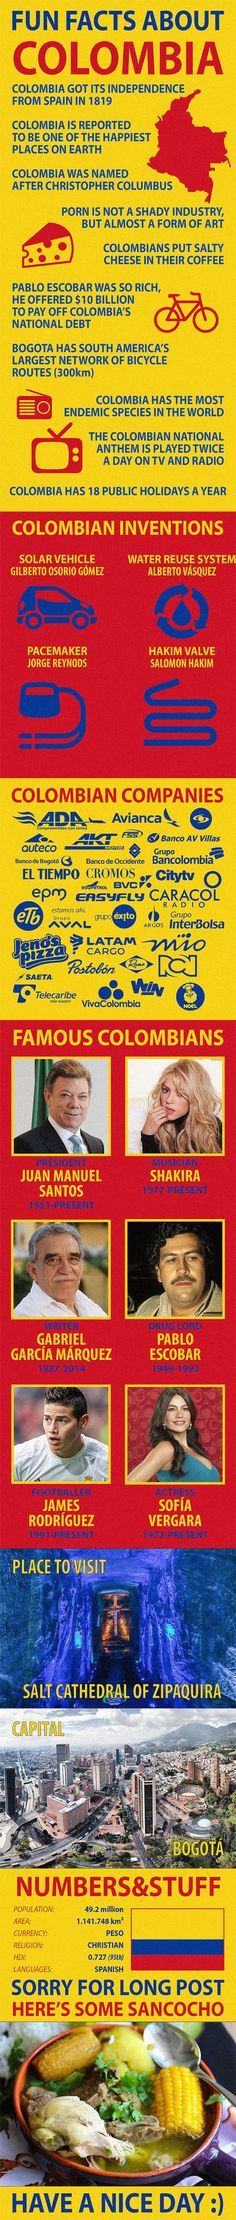 Best #facts about #Colombia #funfacts